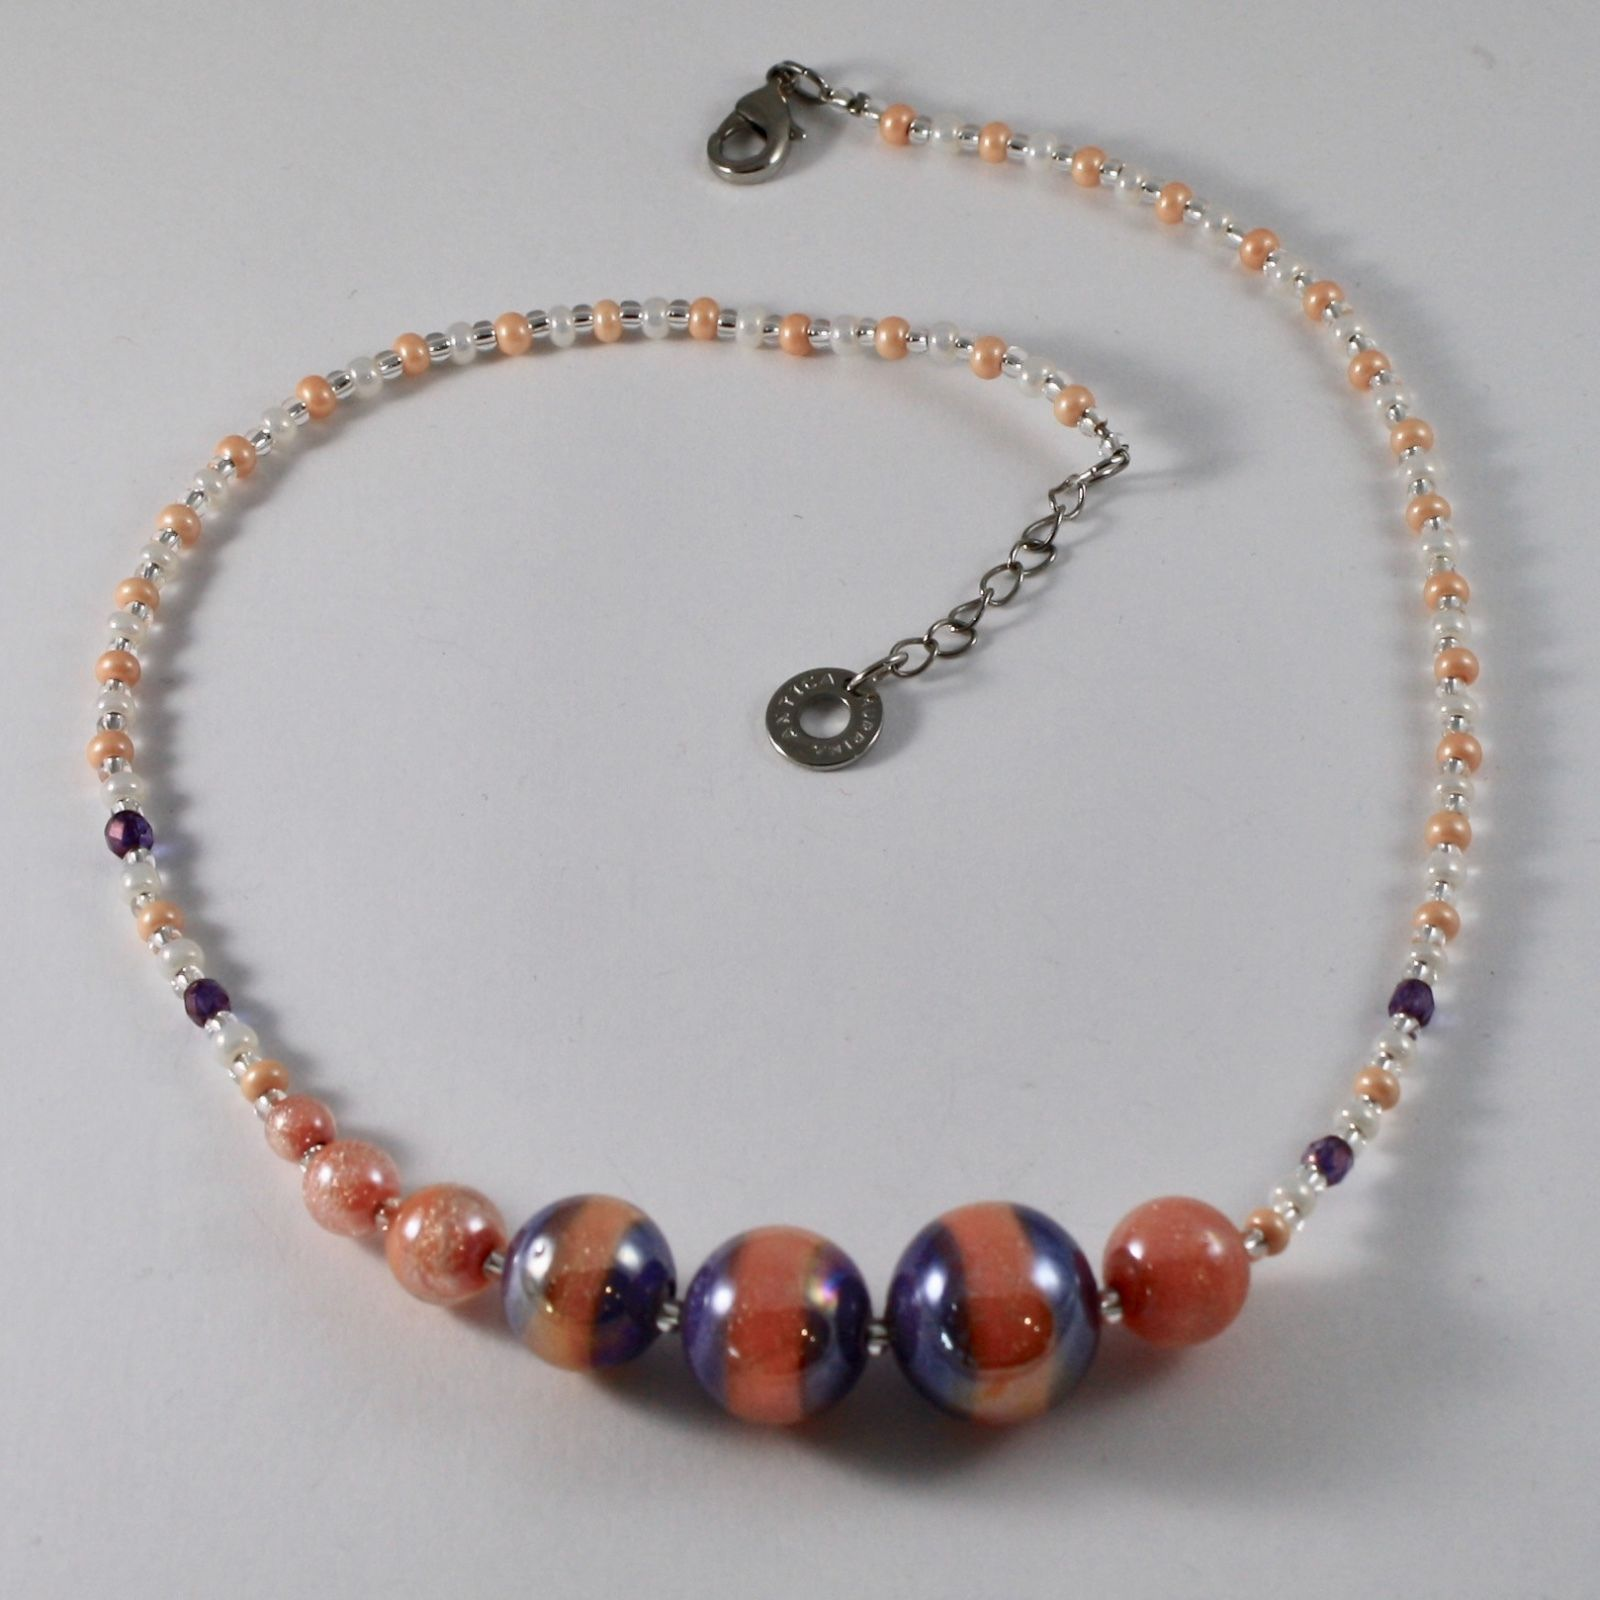 ANTICA MURRINA VENEZIA NECKLACE WITH ORANGE PURPLE MURANO GLASS BALLS 18 INCHES